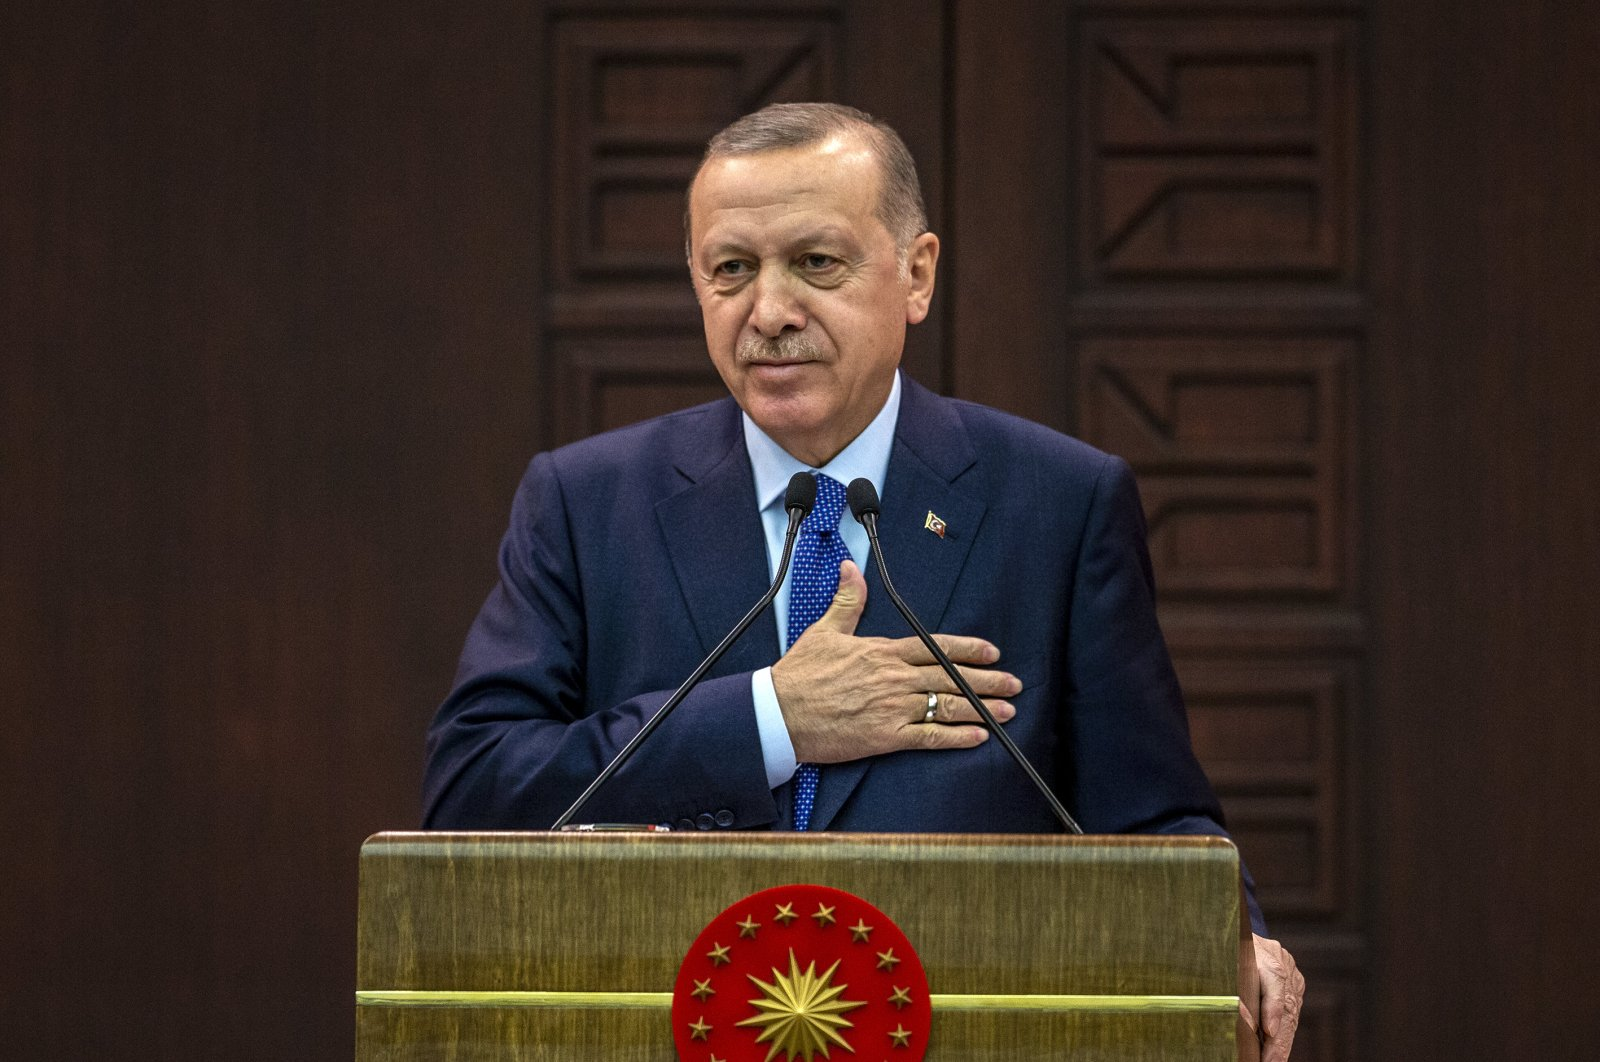 President Recep Tayyip Erdoğan speaks to reporters after a meeting on measures against spread of coronavirus, on Thursday, 19 March 2020, in Ankara, Turkey. (AA Photo)